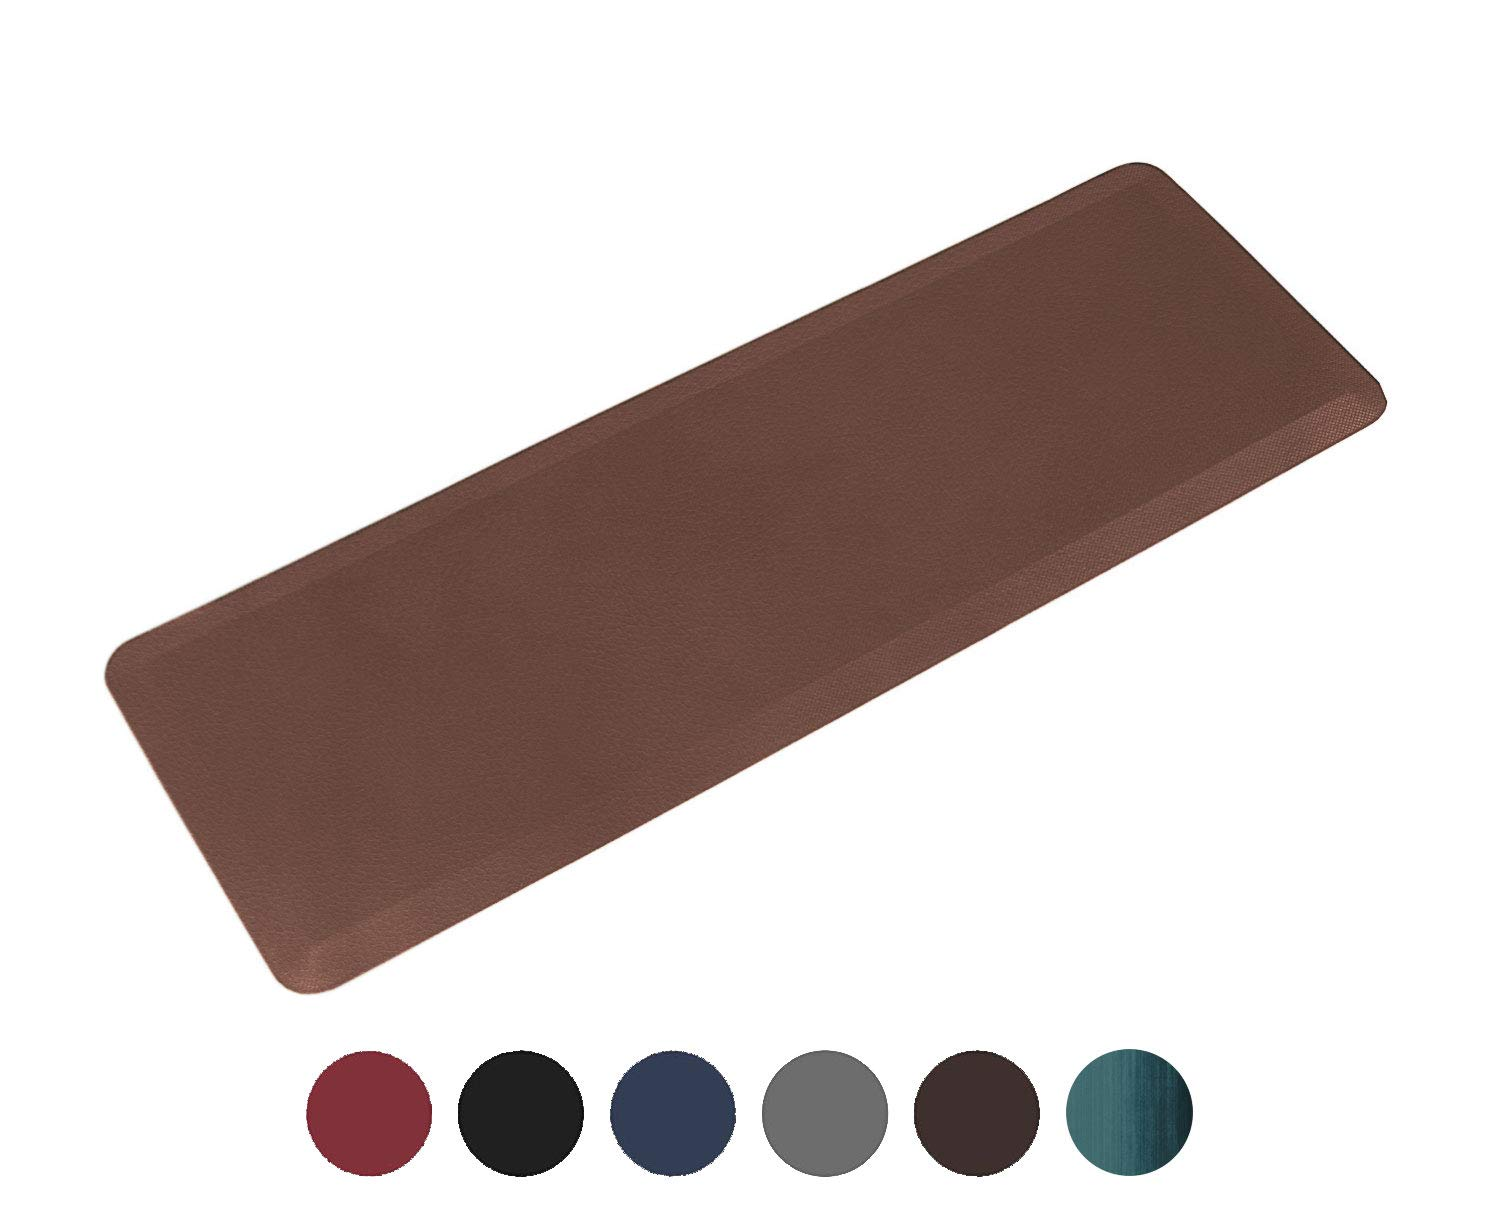 Oasis Long Kitchen Runner Mat, Comfort Anti Fatigue Mat, 5 Colors and 3 Sizes, Perfect for Kitchens and Standing Desks, 24x70x3/4-Inch, Dark Brown